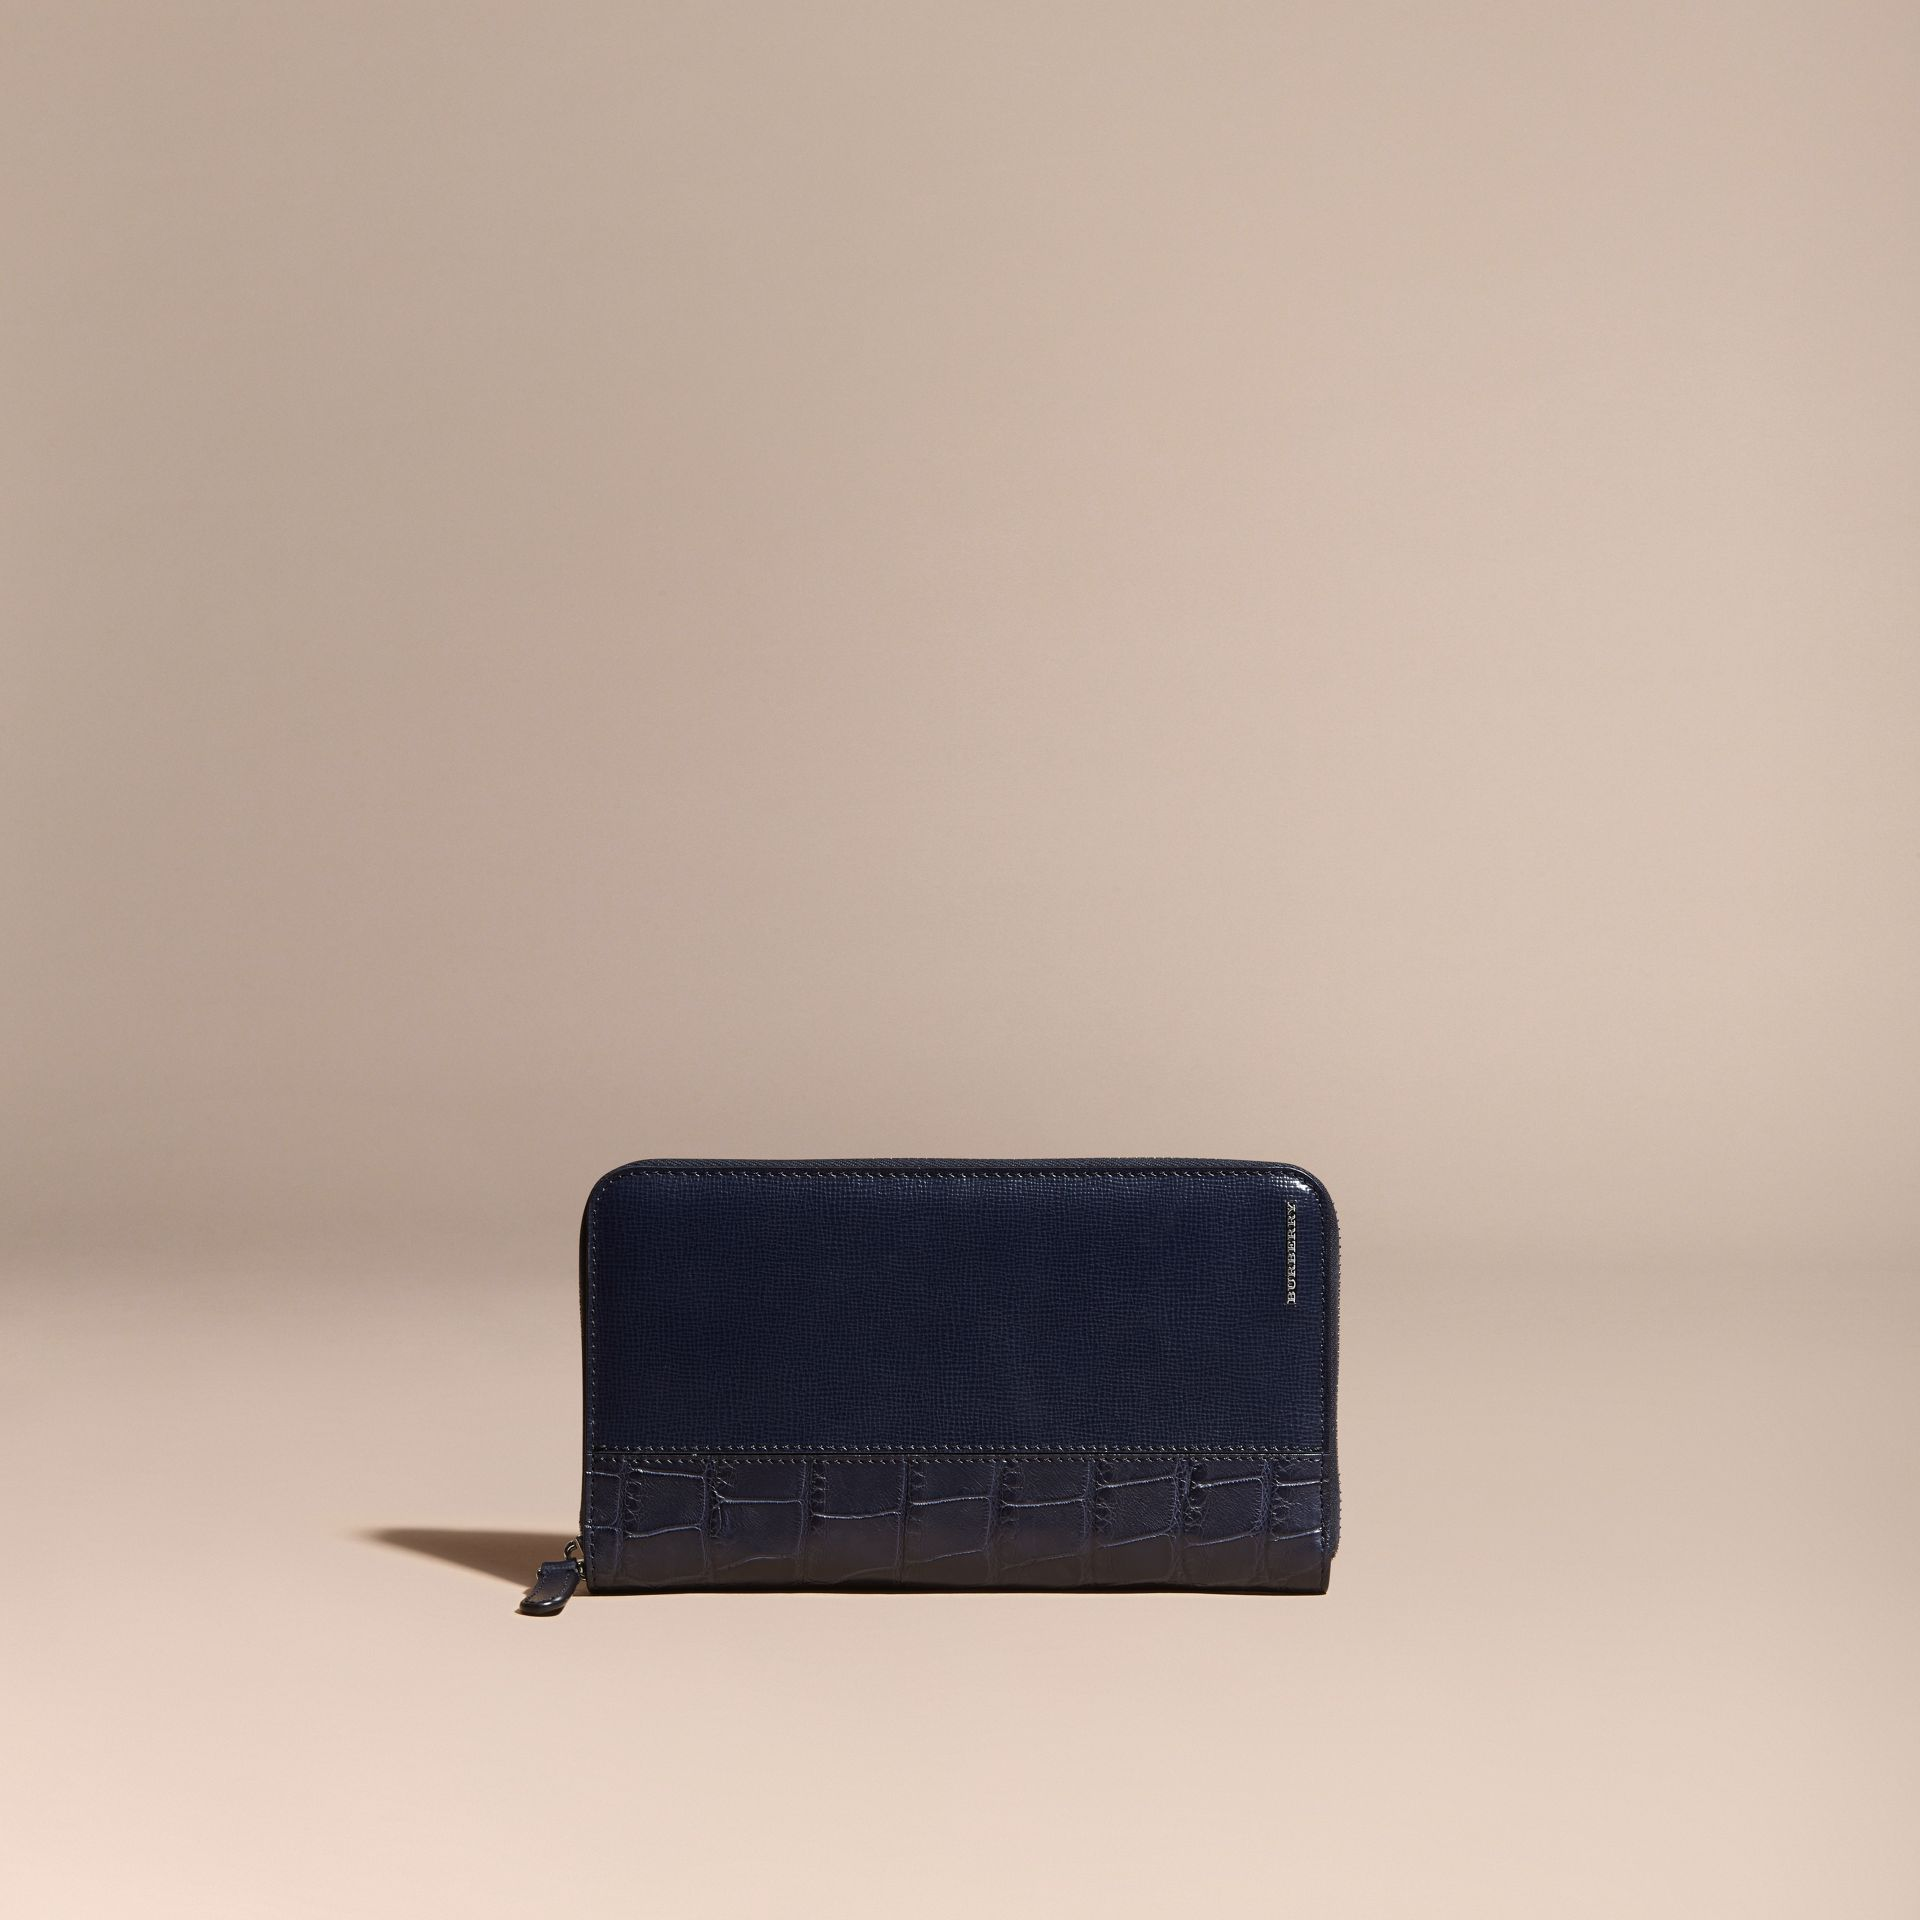 Dark navy London Leather and Alligator Ziparound Wallet Dark Navy - gallery image 6